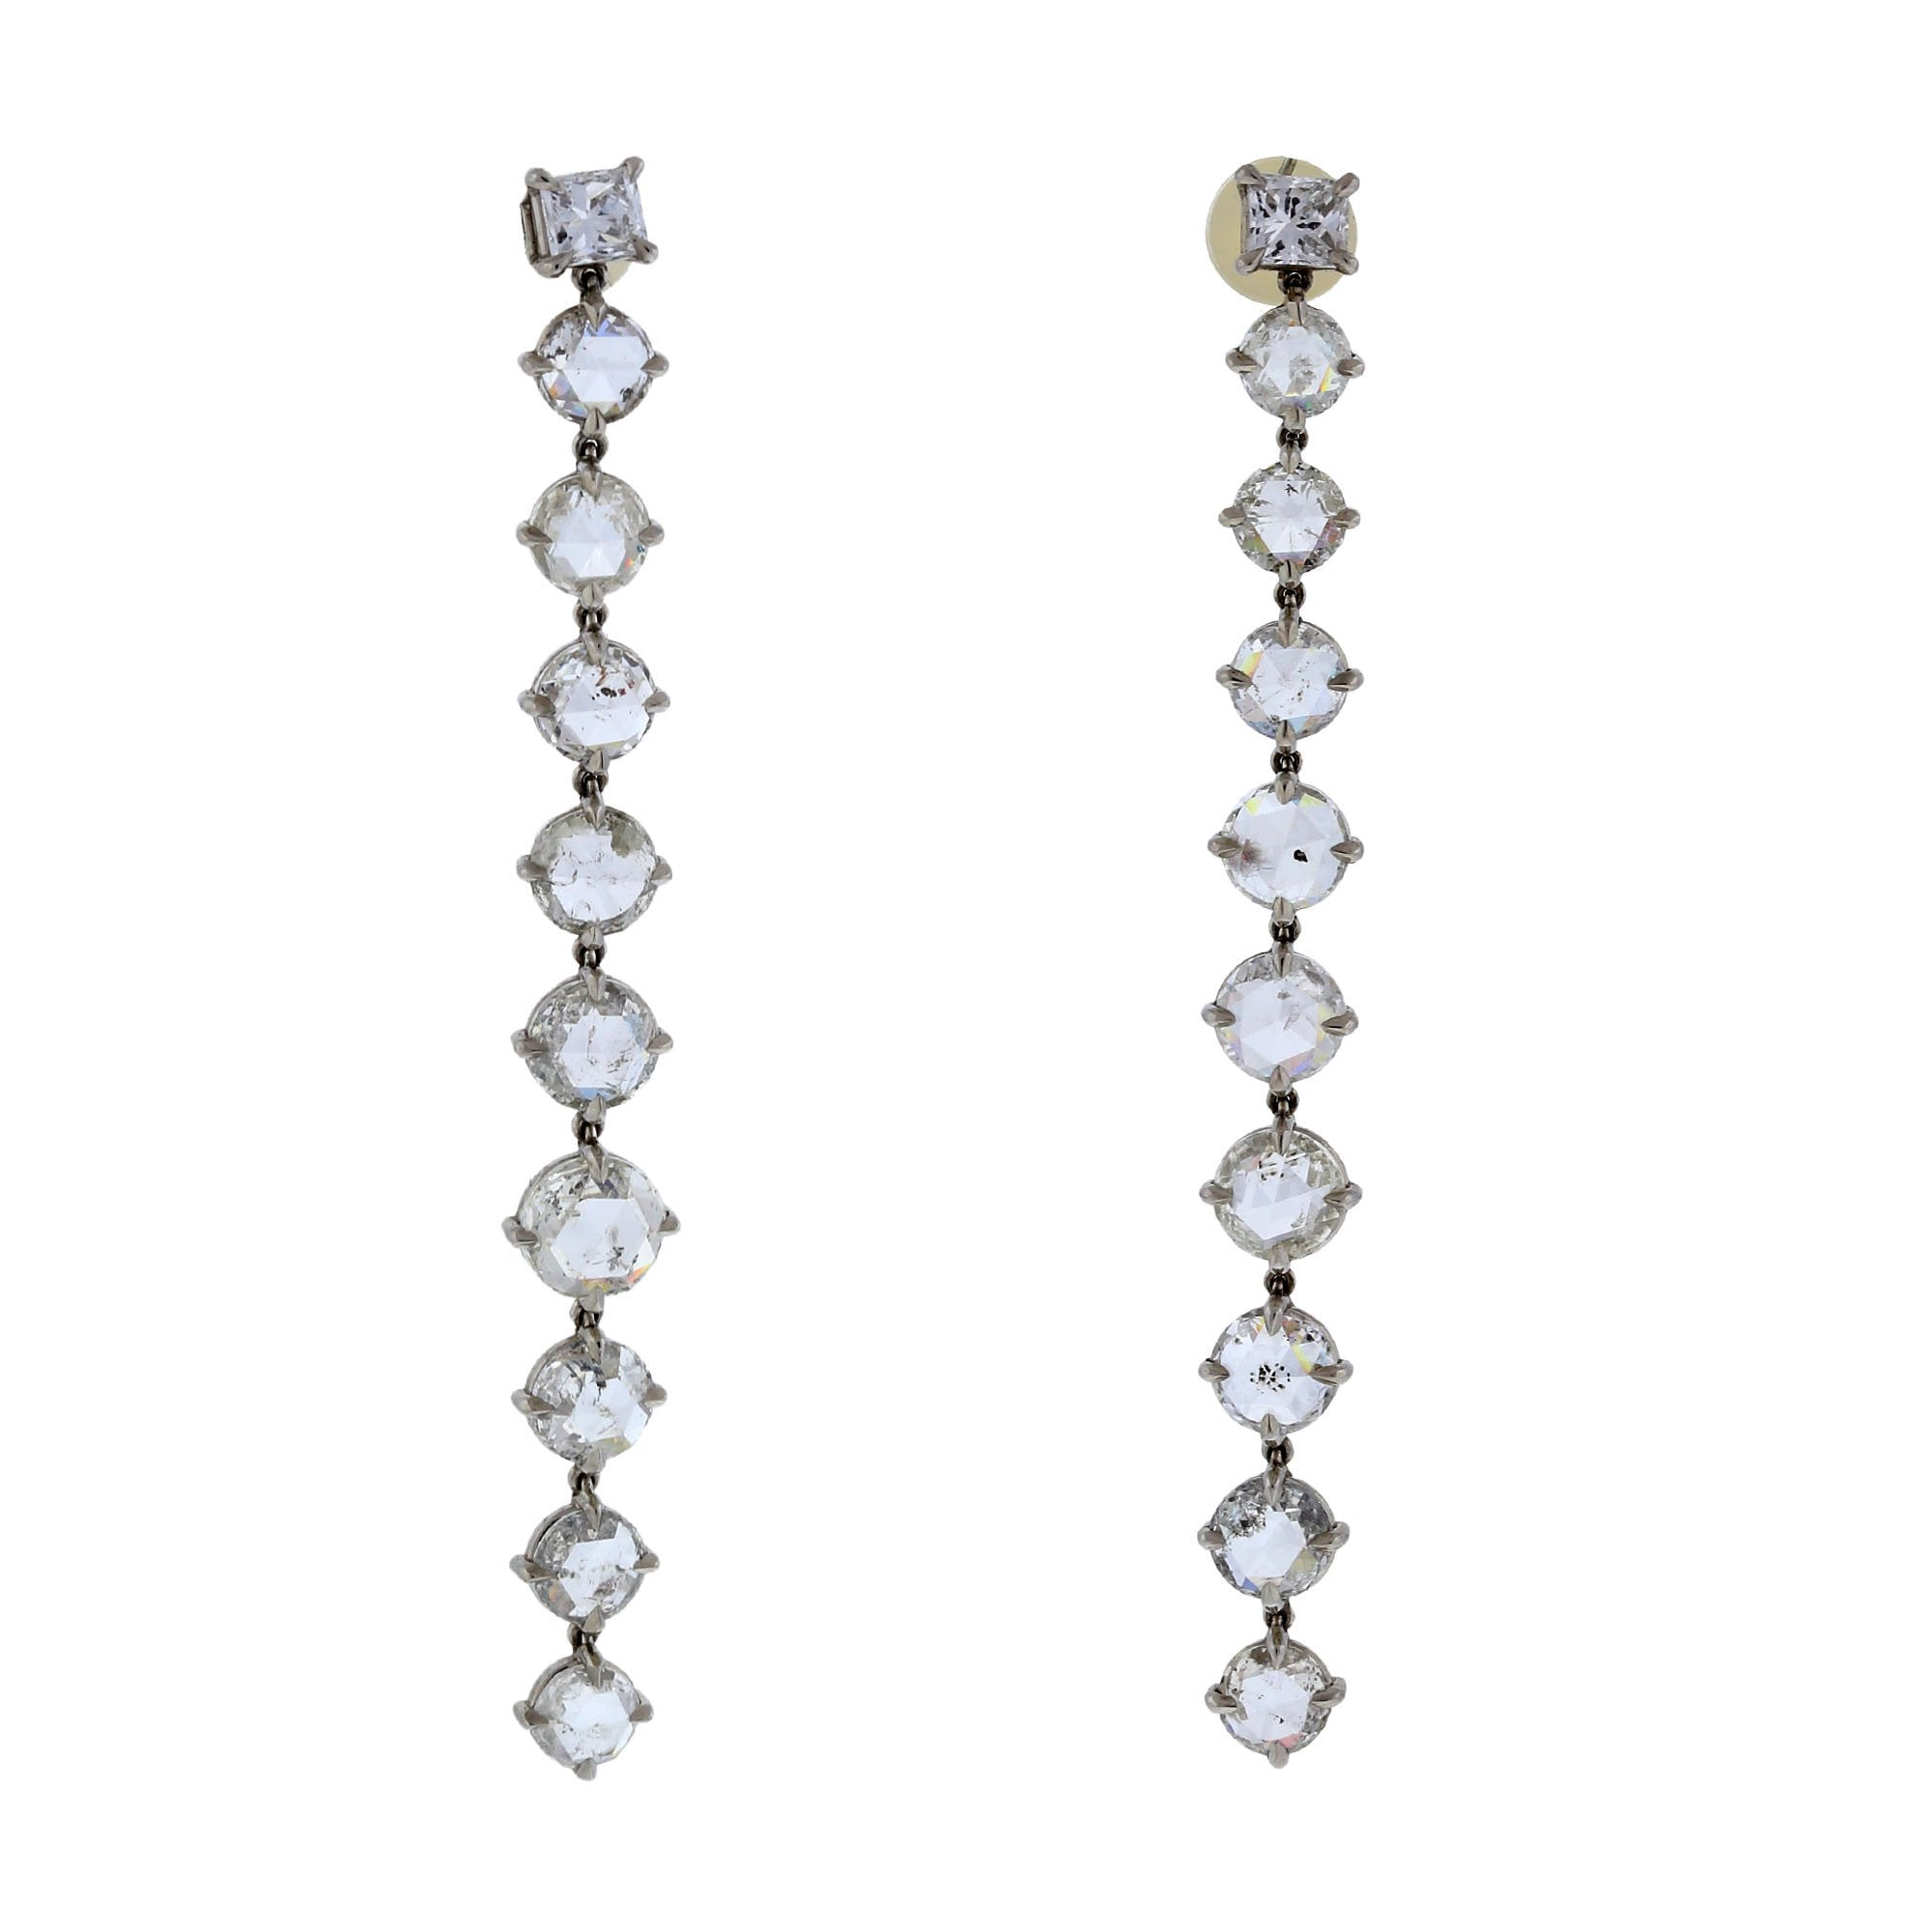 Droplet X diamond earrings